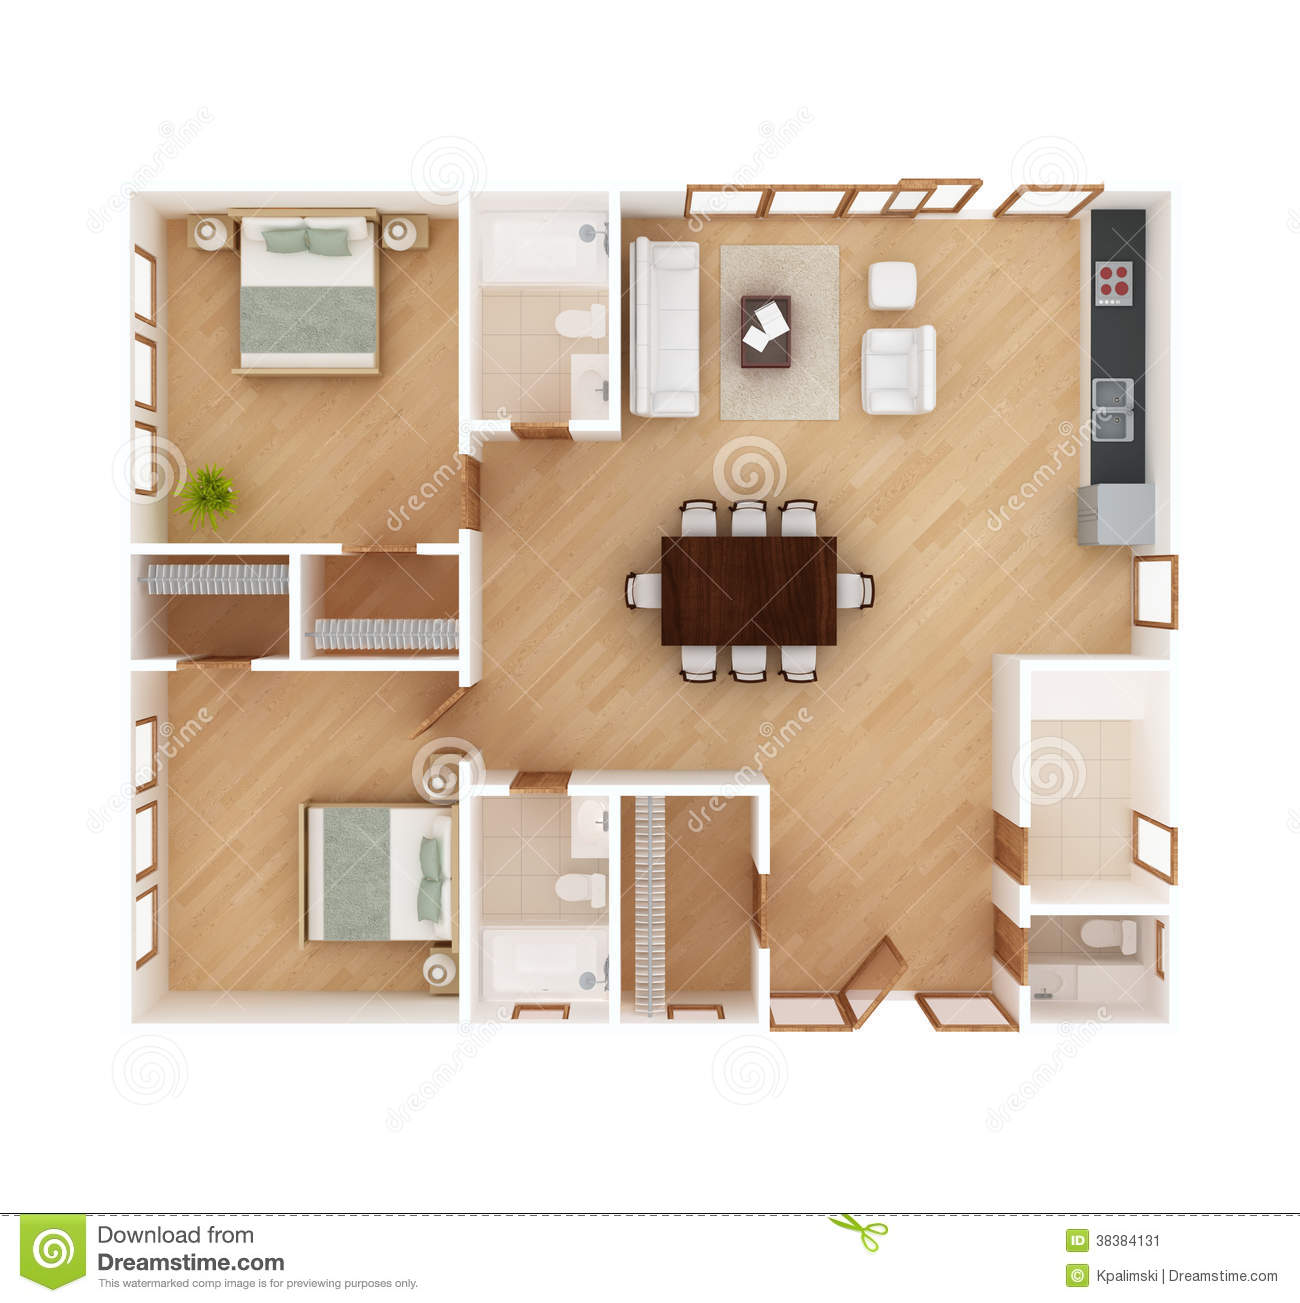 top best site for house plans. House plan top view stock illustration  Illustration of house